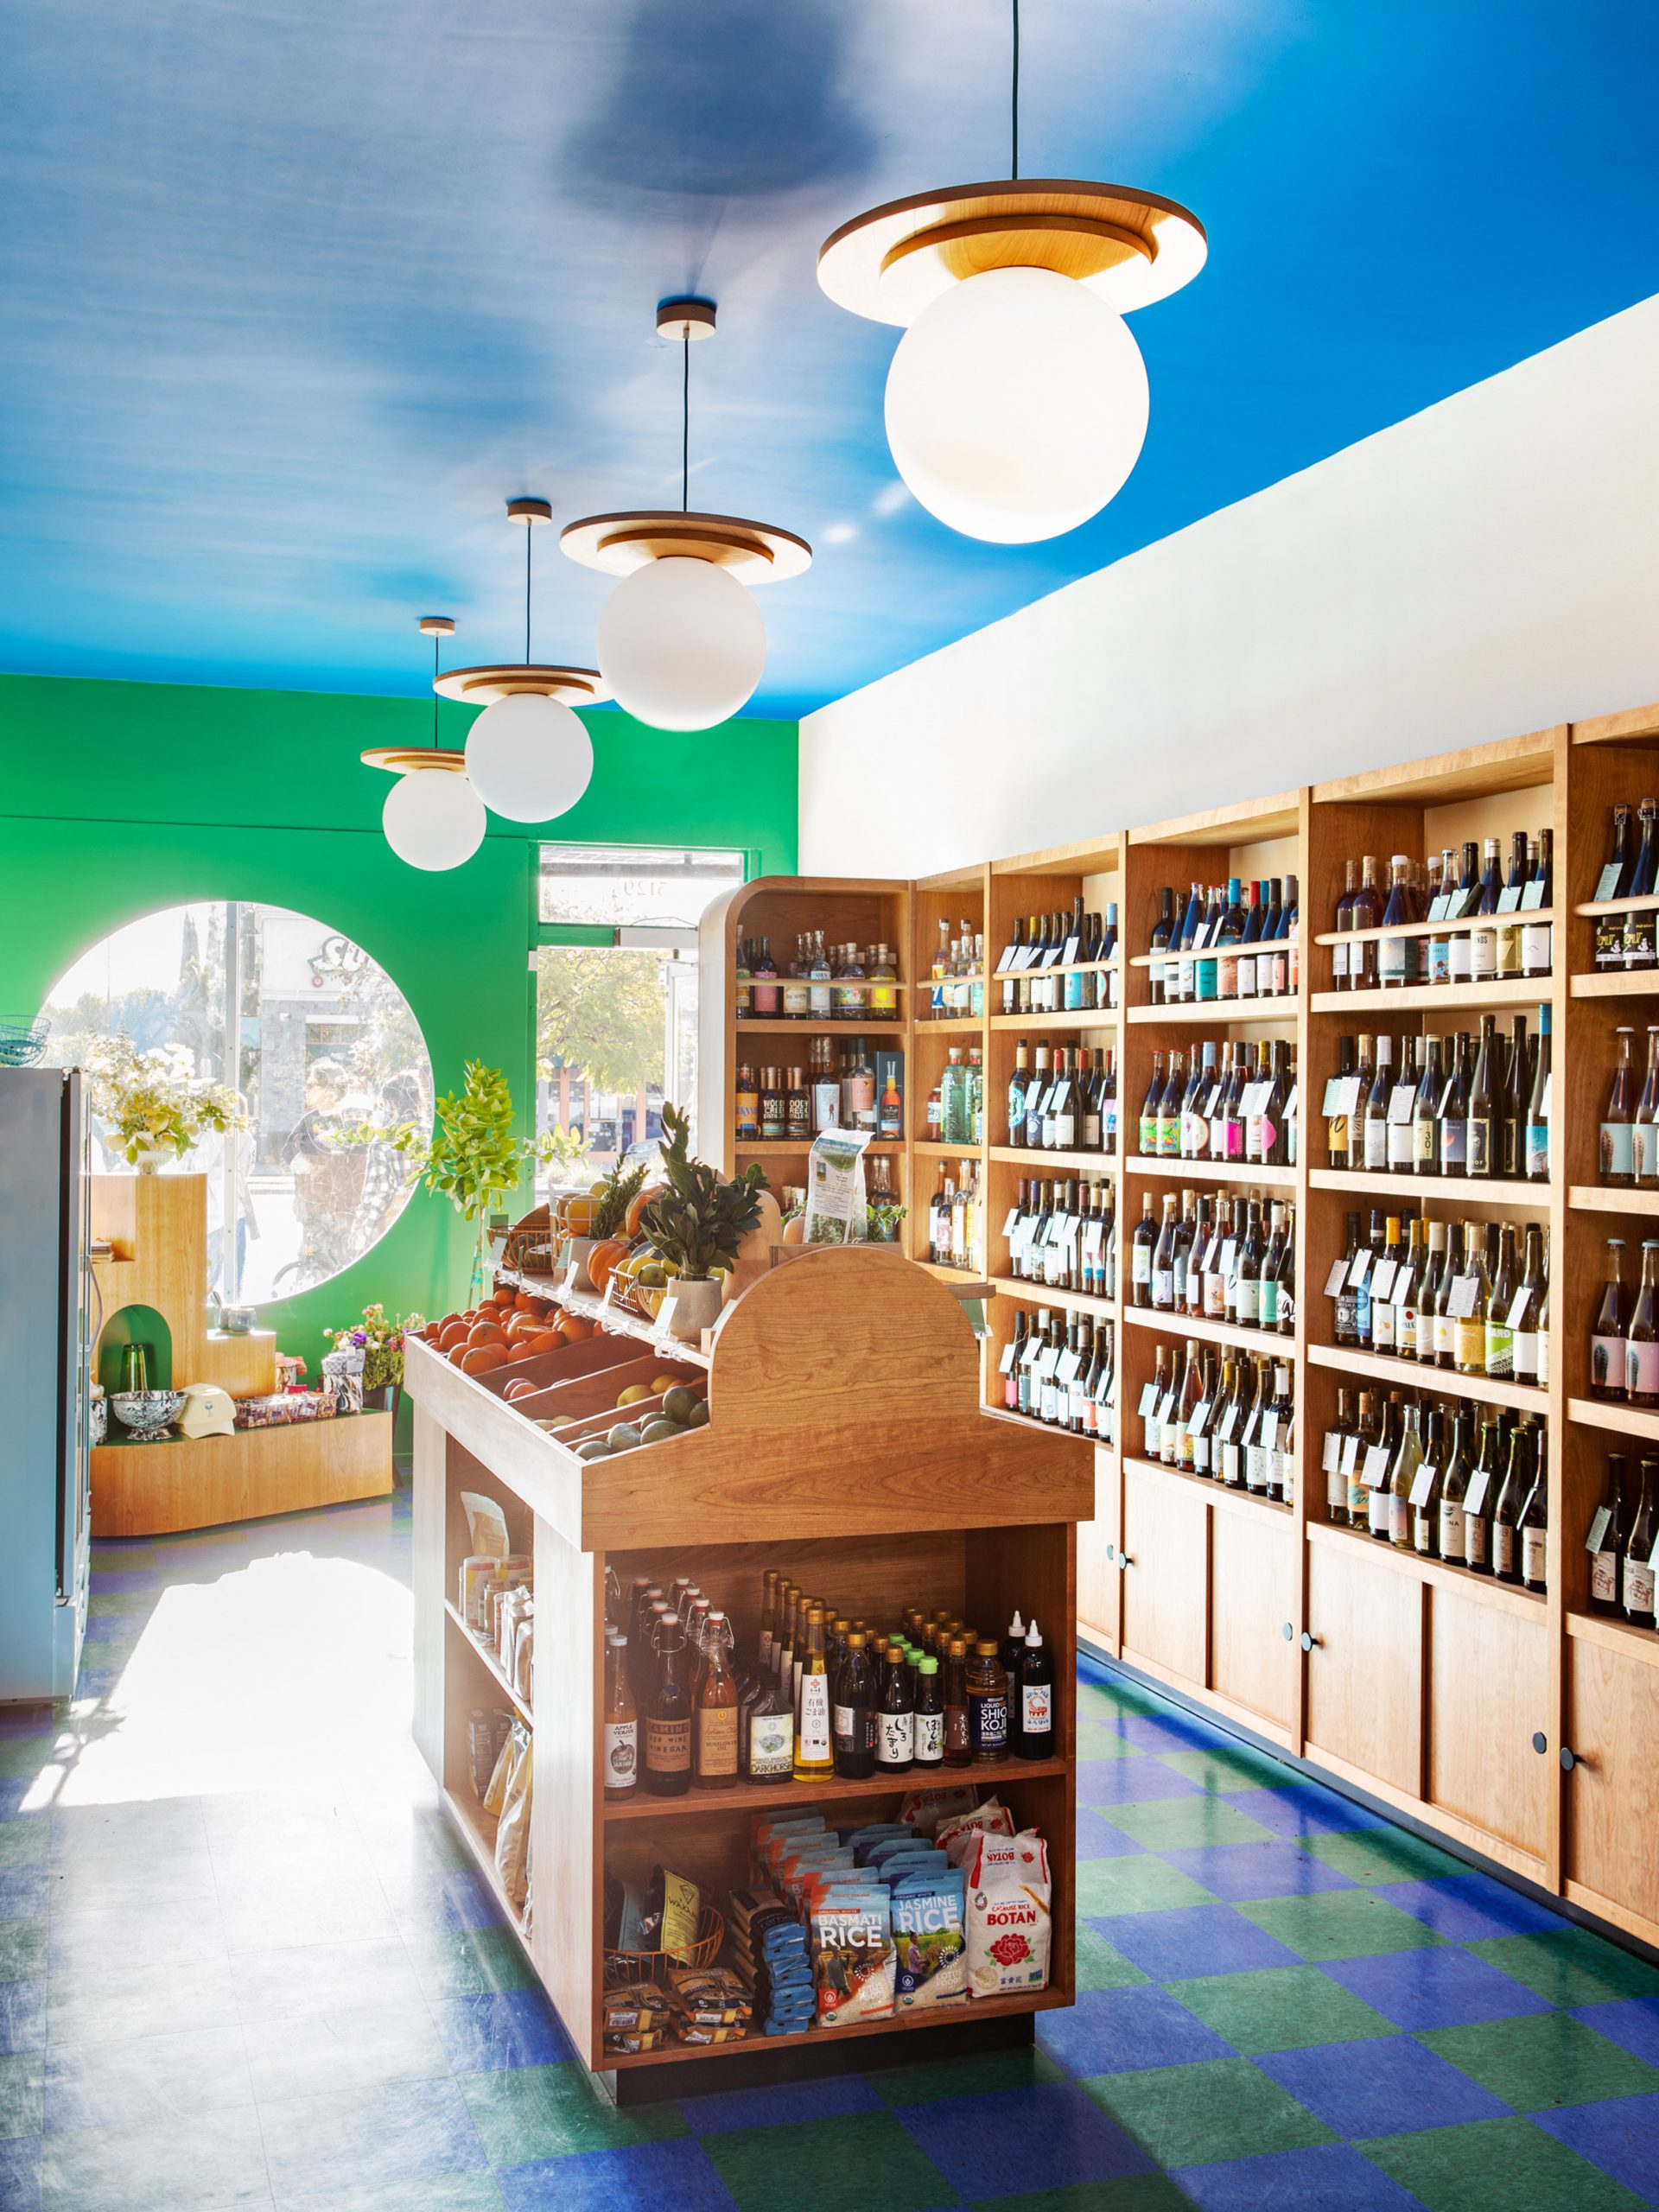 Interior view of Wine and Eggs with store counter